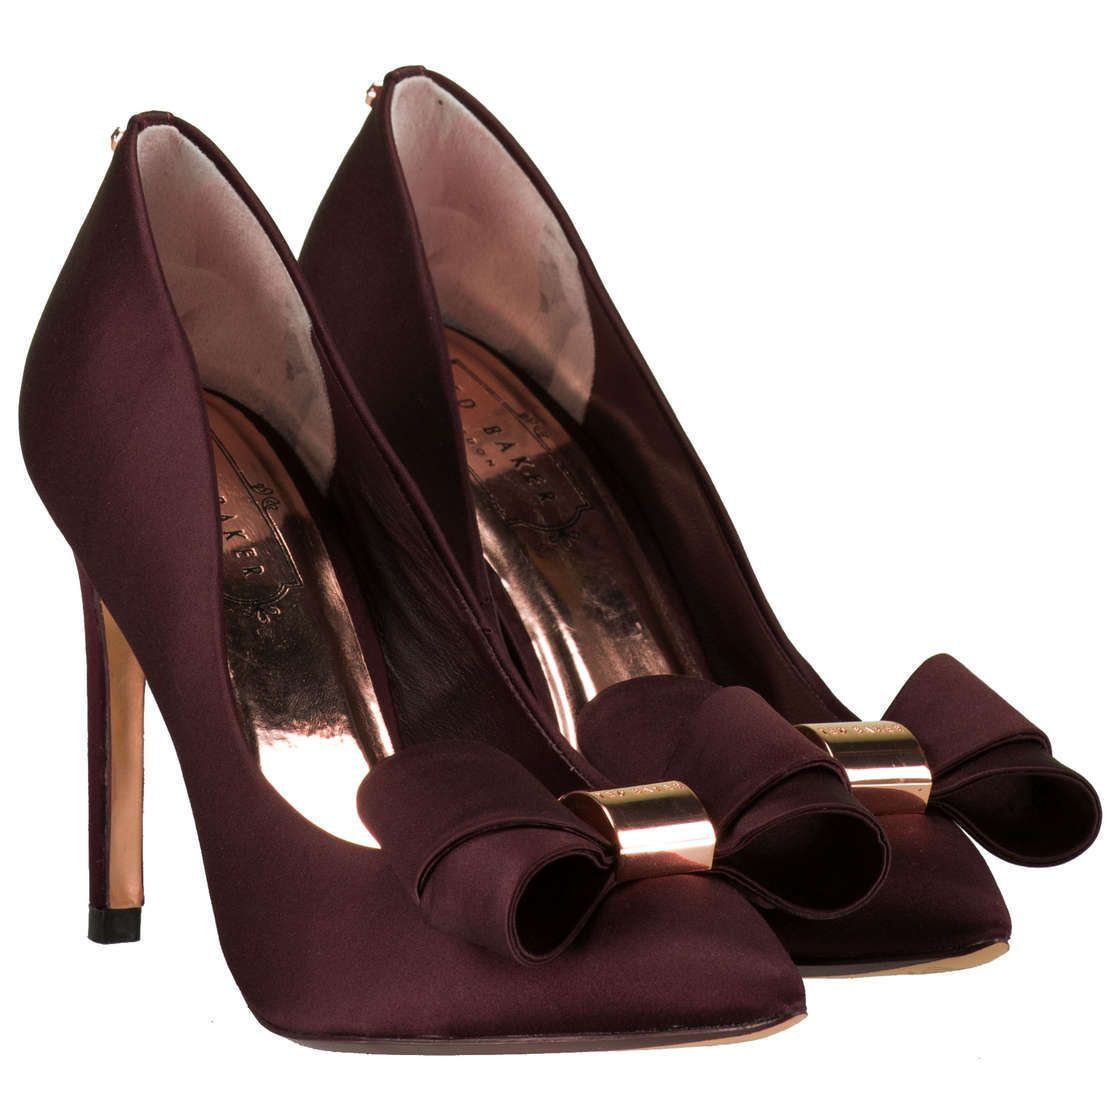 b89250cb35f TED BAKER ▻ Pumps 'Ichlibi' mit Schleifenapplikation | Stylish ...